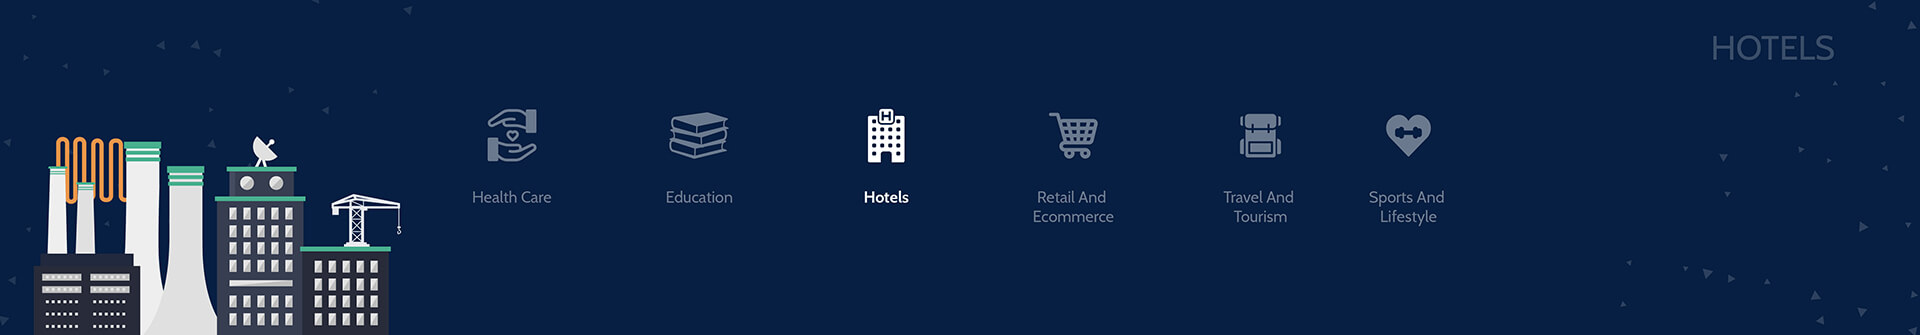 Hotel Industry Web and App Development